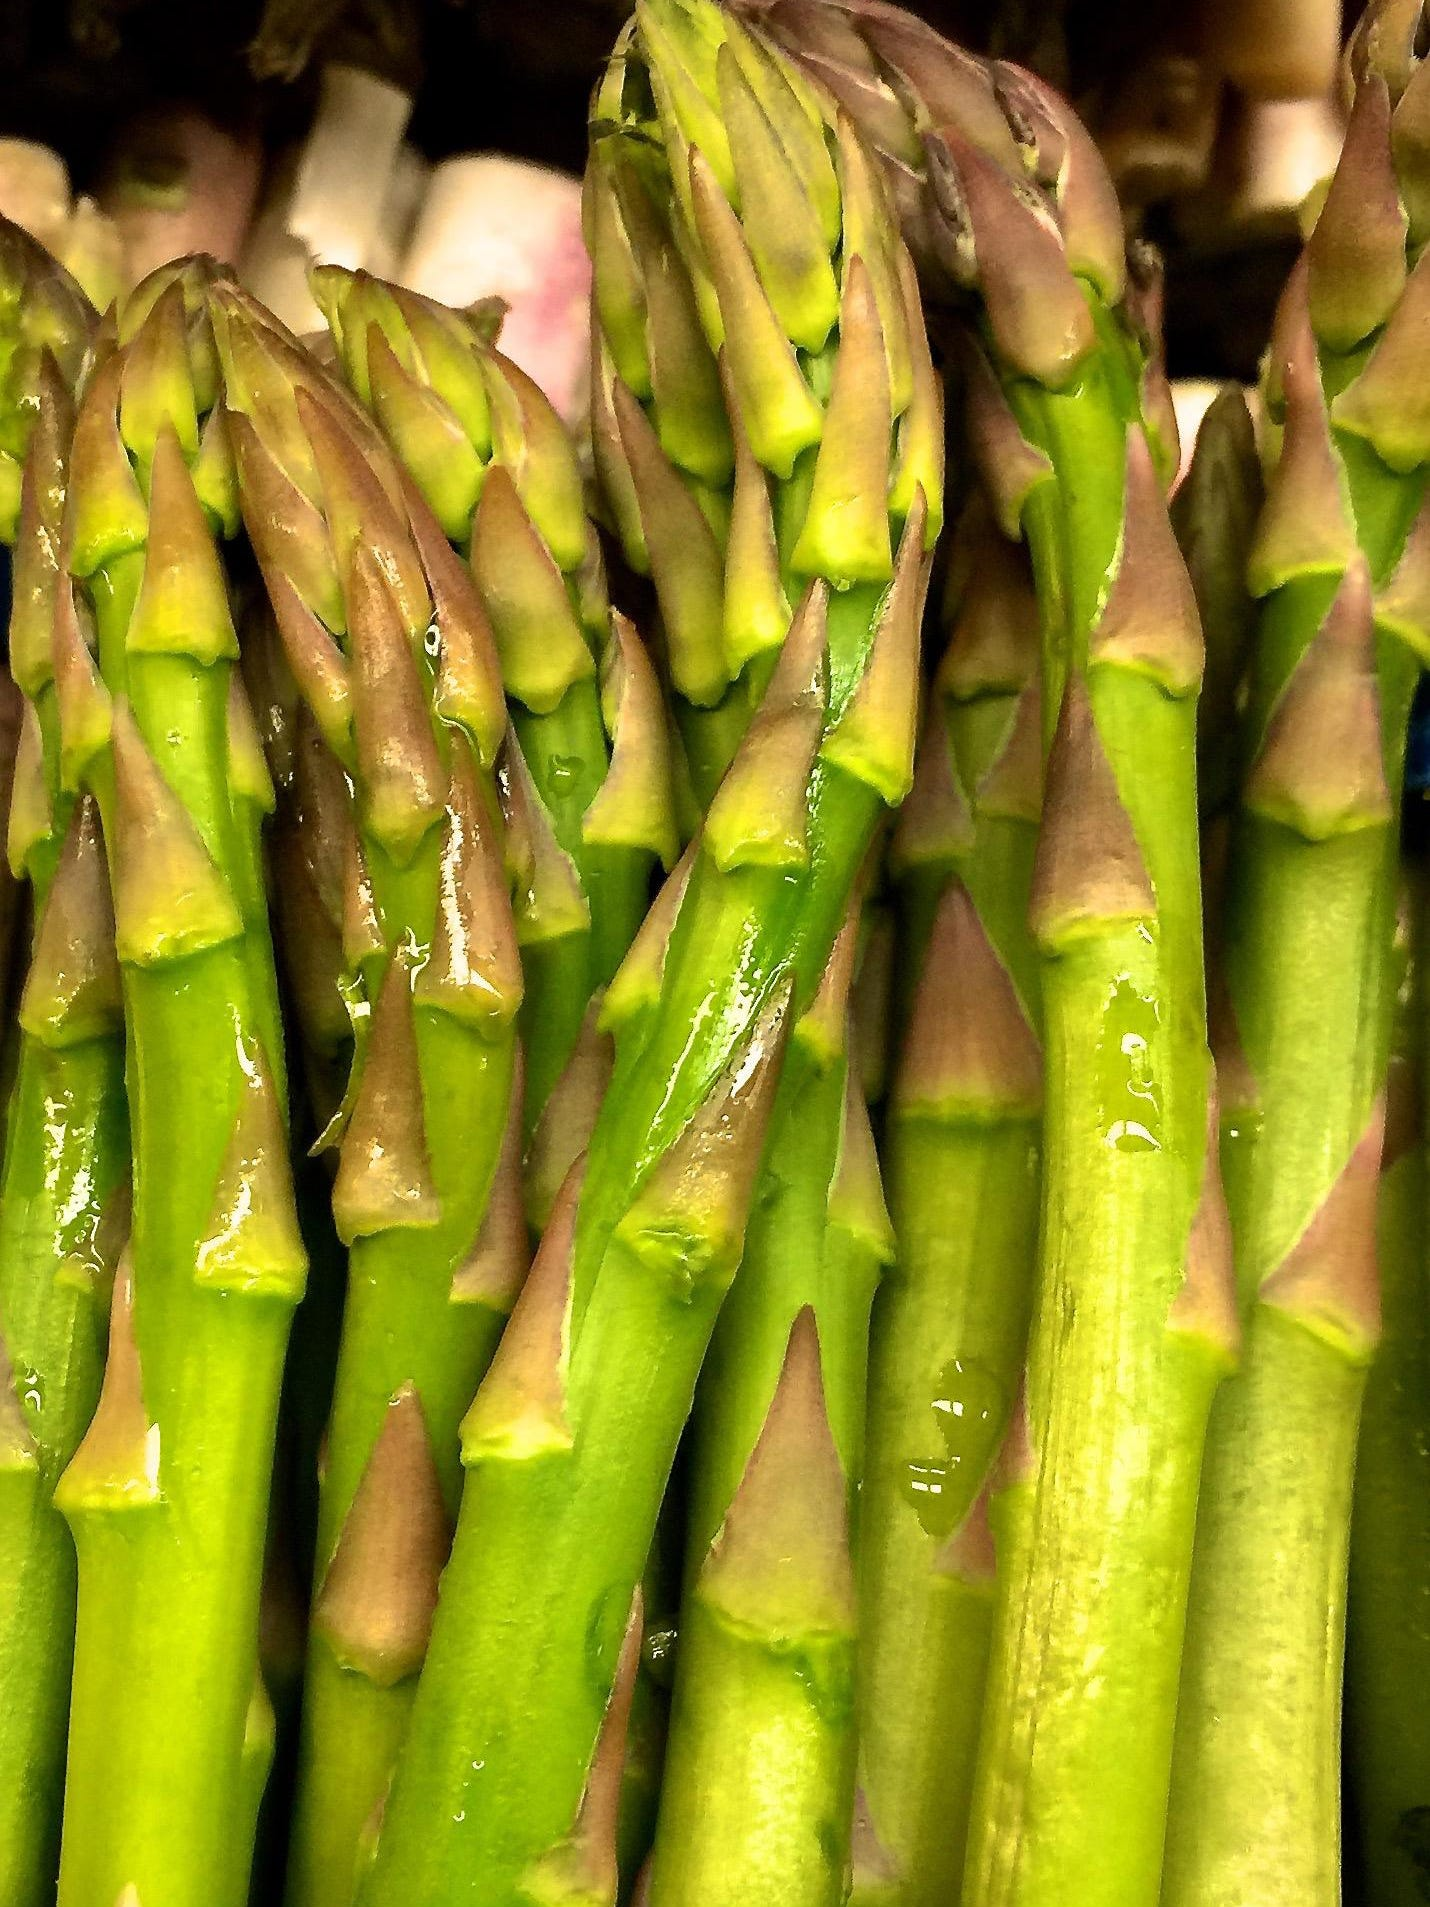 Long Lived Asparagus Plants Can Last Decades